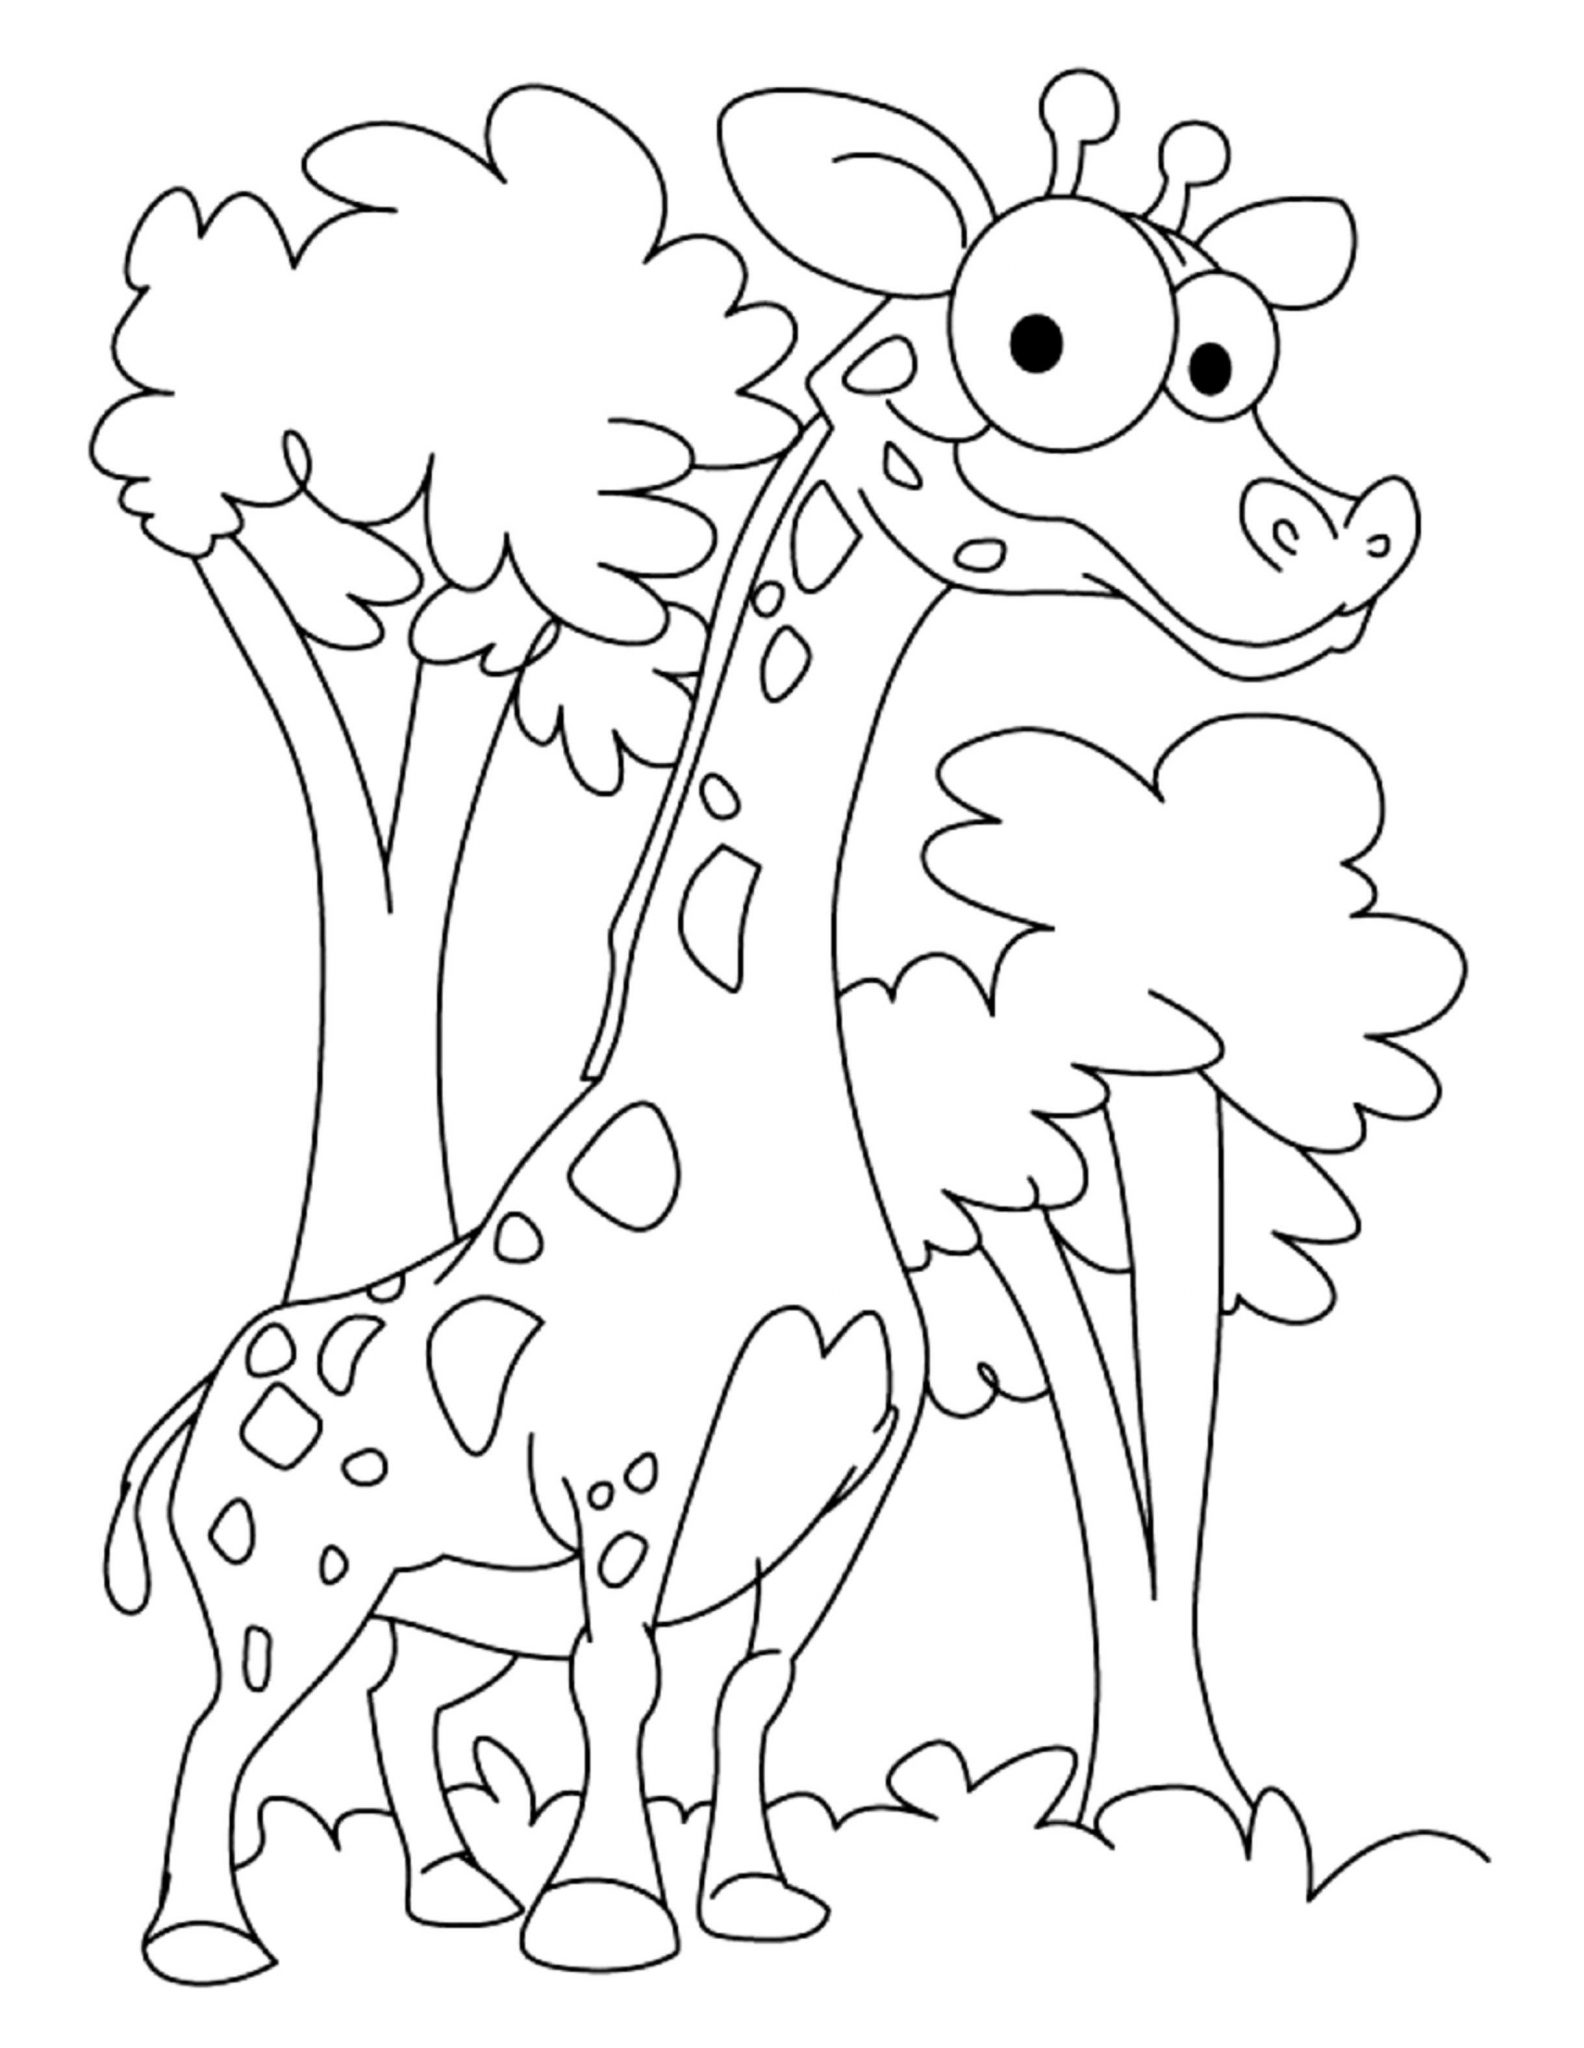 coloring pages giraffe coloring pages for kids giraffe coloring pages for kids pages coloring giraffe